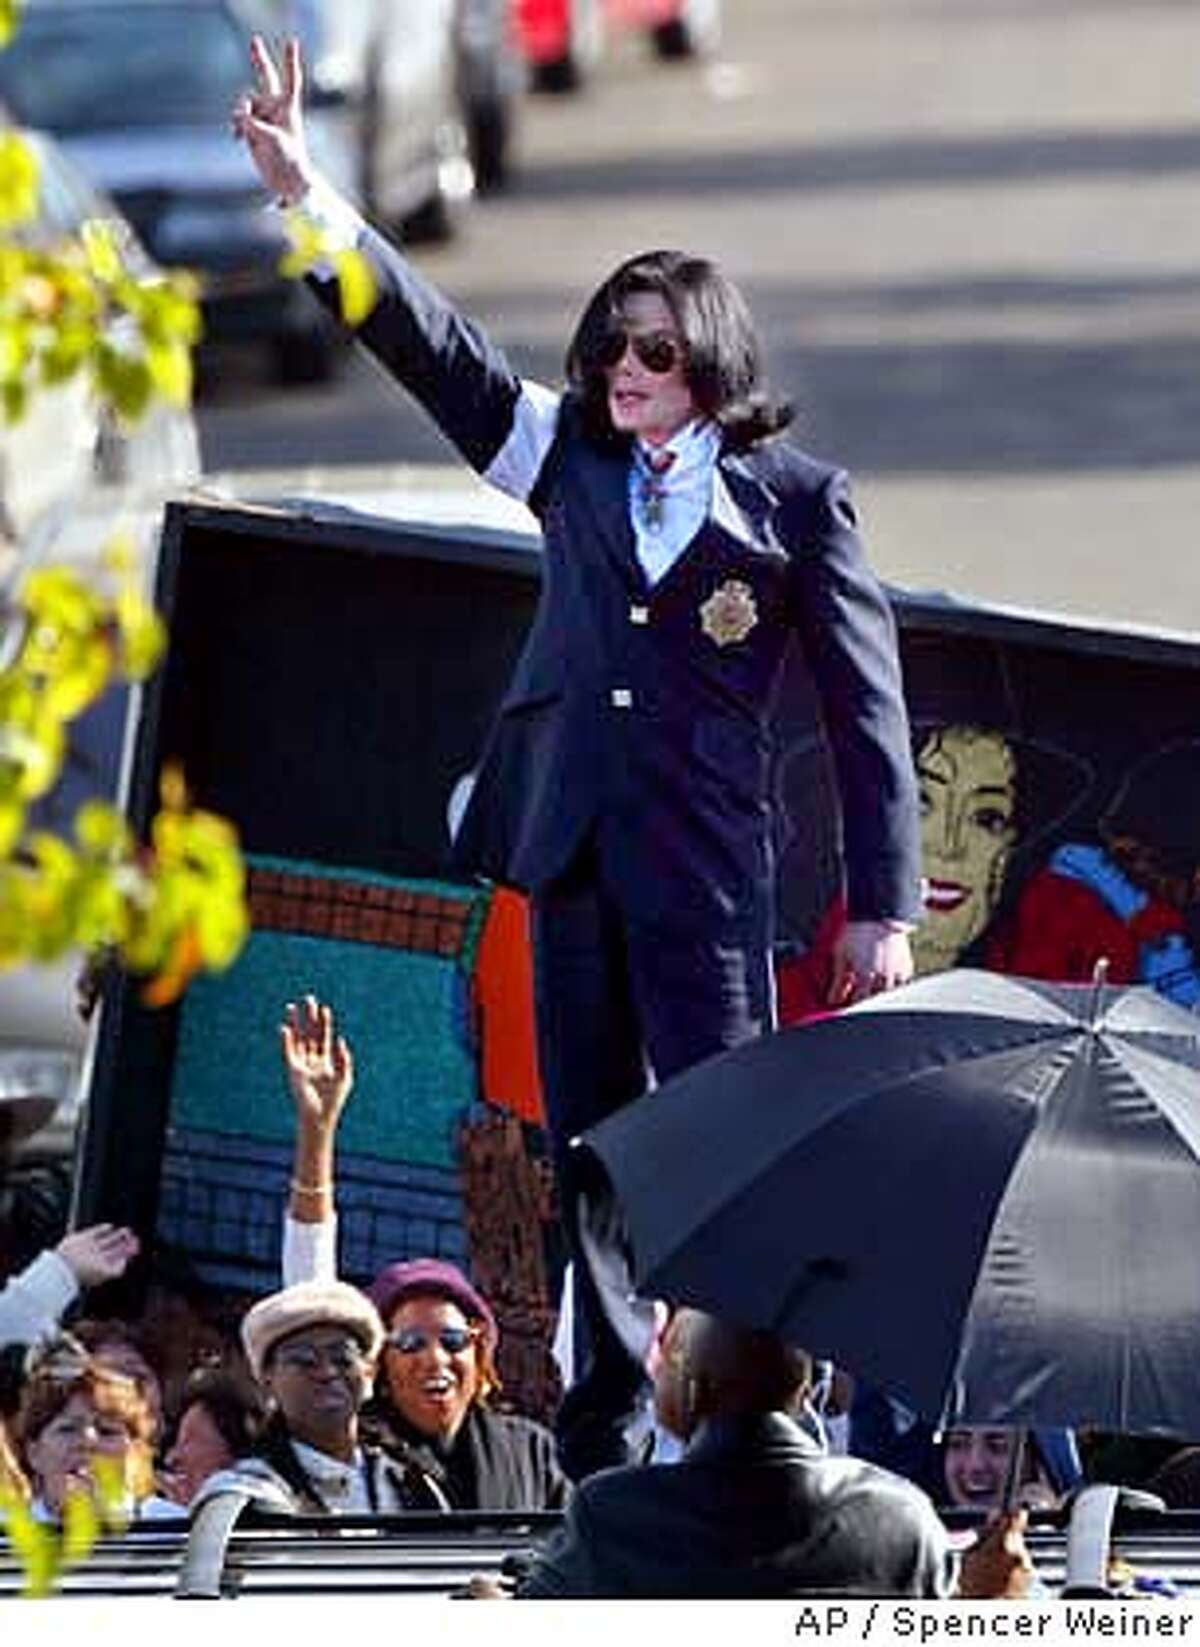 flashes the peace sign to his fans from on top of his limousine as he leaves the courthouse in Santa Maria, Calif., after his arraignment on child molestation charges Friday, Jan. 16, 2004. (AP Photo/Spencer Weiner, pool)